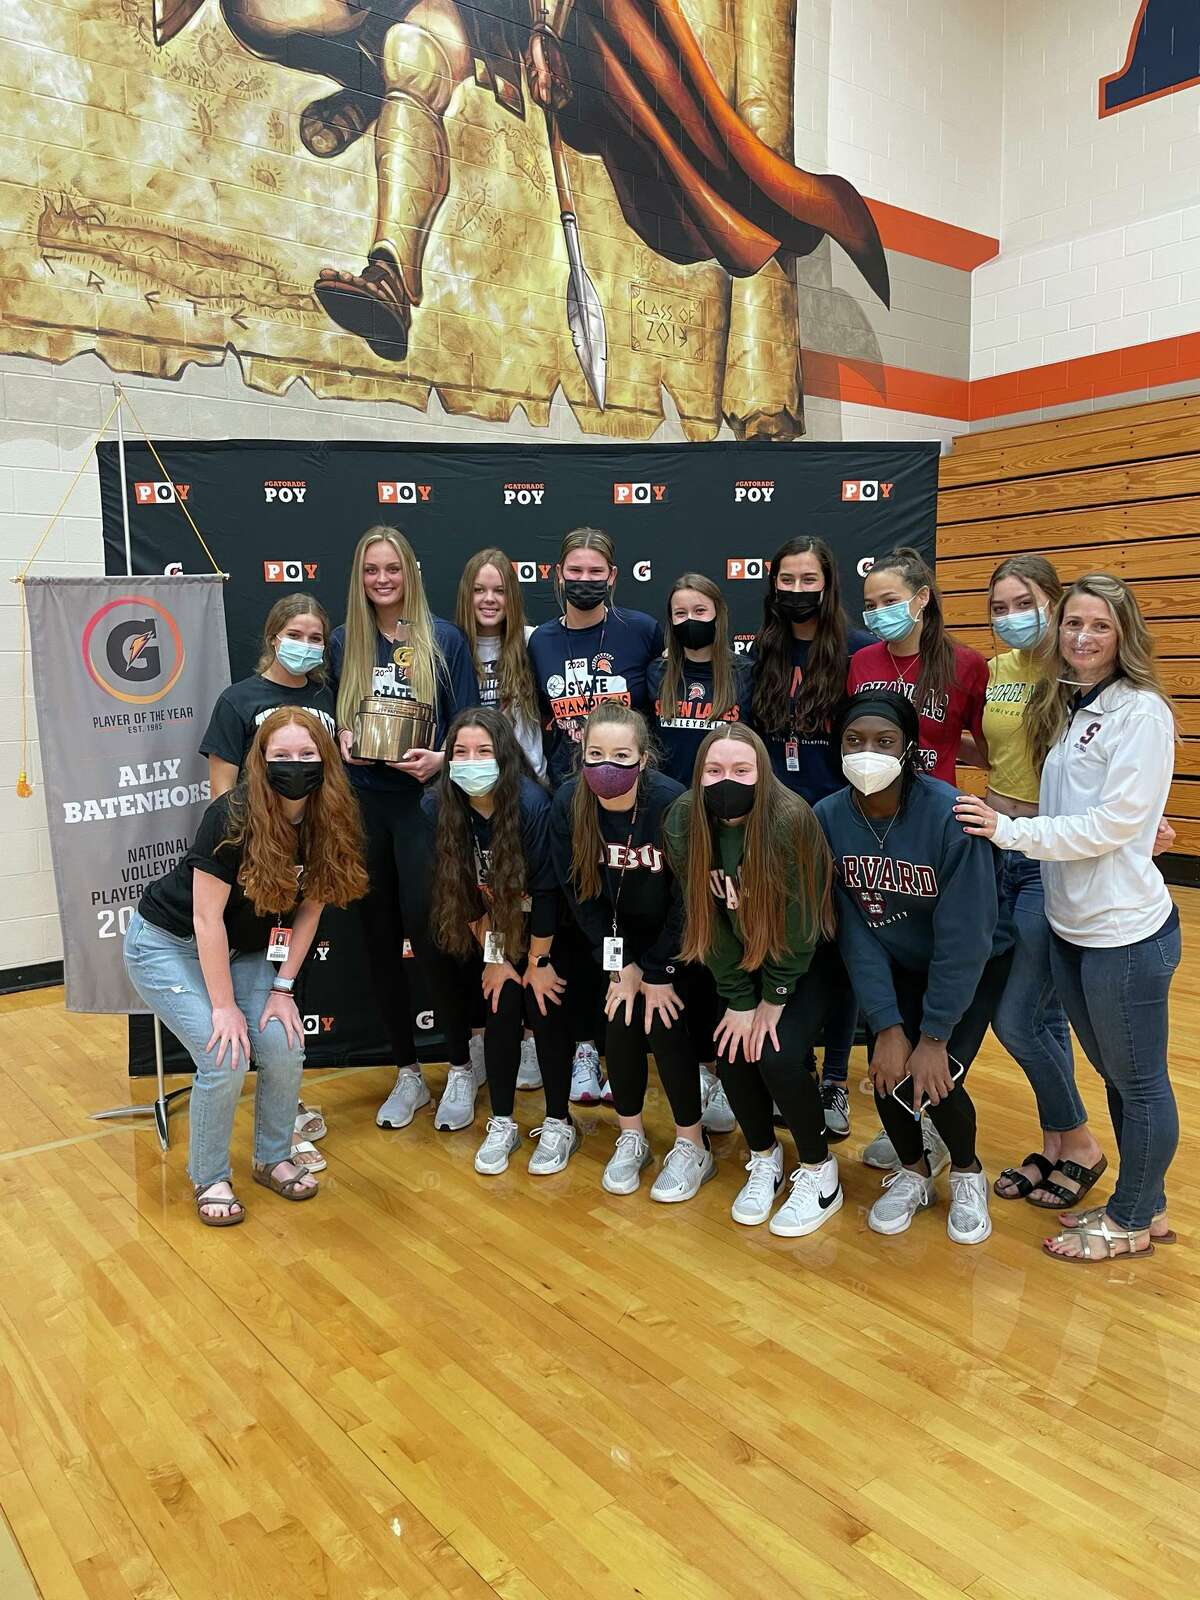 Seven Lakes' Ally Batenhorst was honored as the Gatorade National Volleyball Player of the Year during a May 12 ceremony with family, friends, teammates, coaches and staff at Seven Lakes High School.